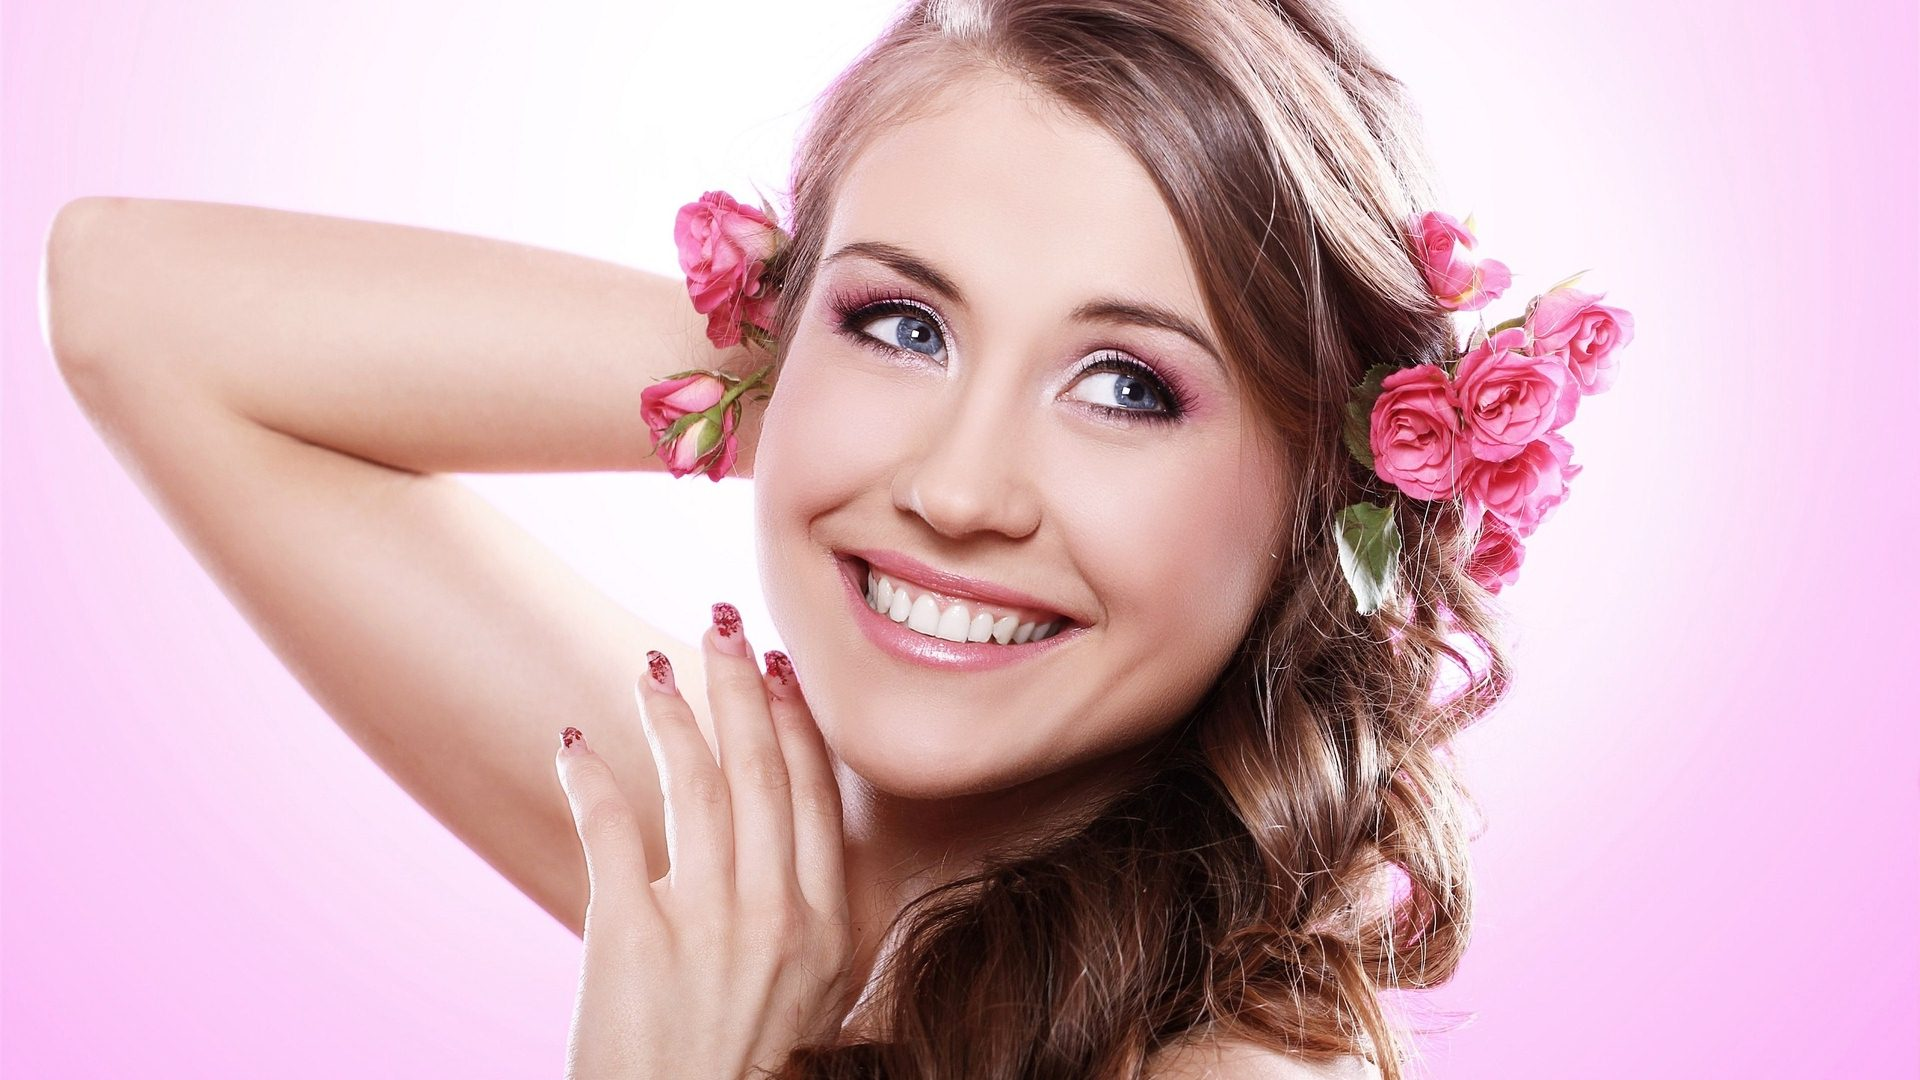 HD Smiling Girl Wallpapers